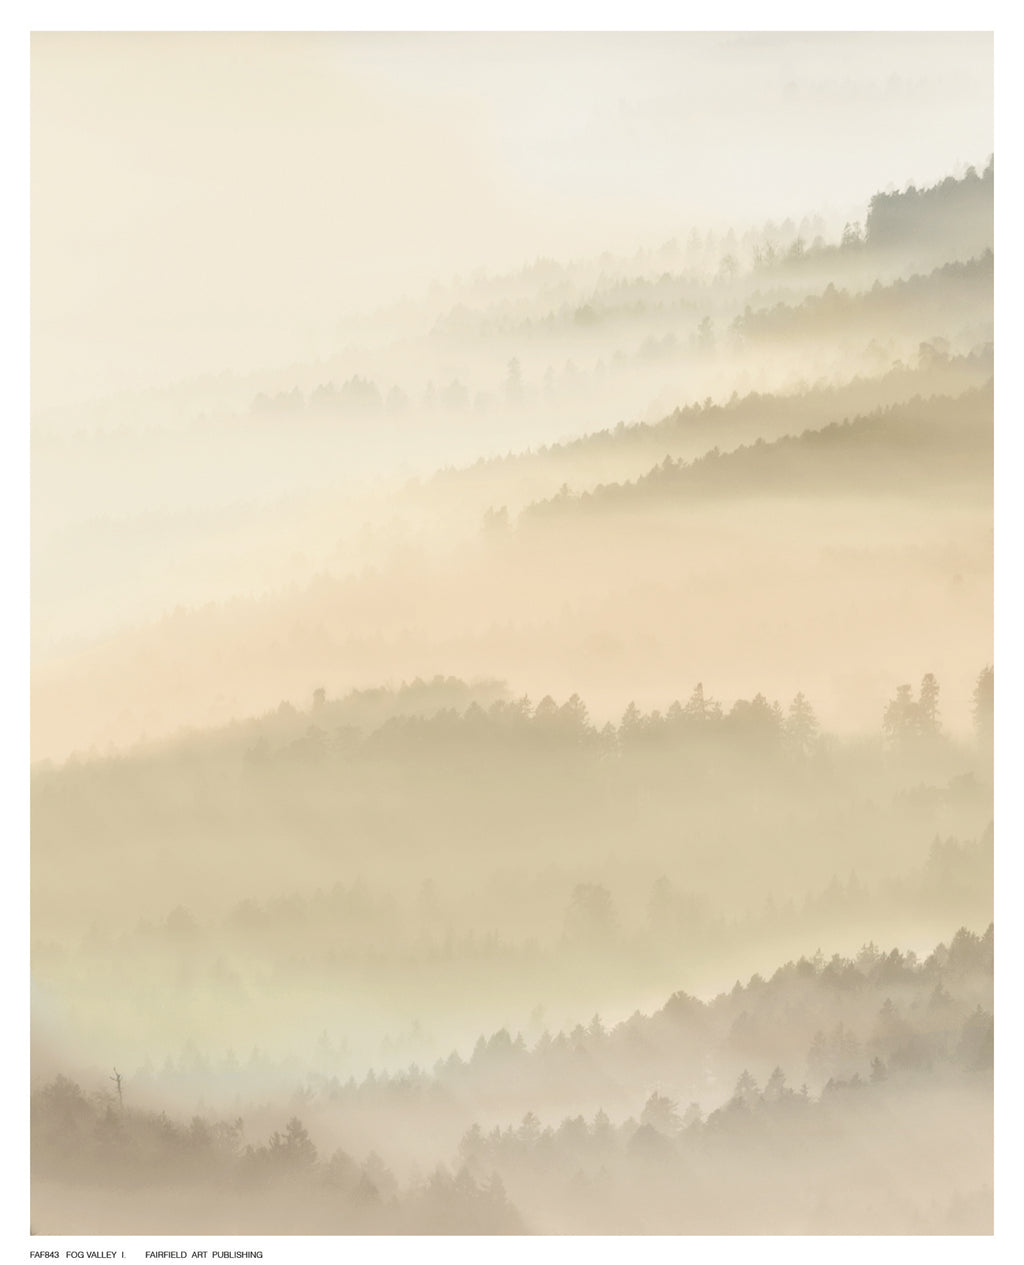 Fog Valley I. by Herzog - FairField Art Publishing